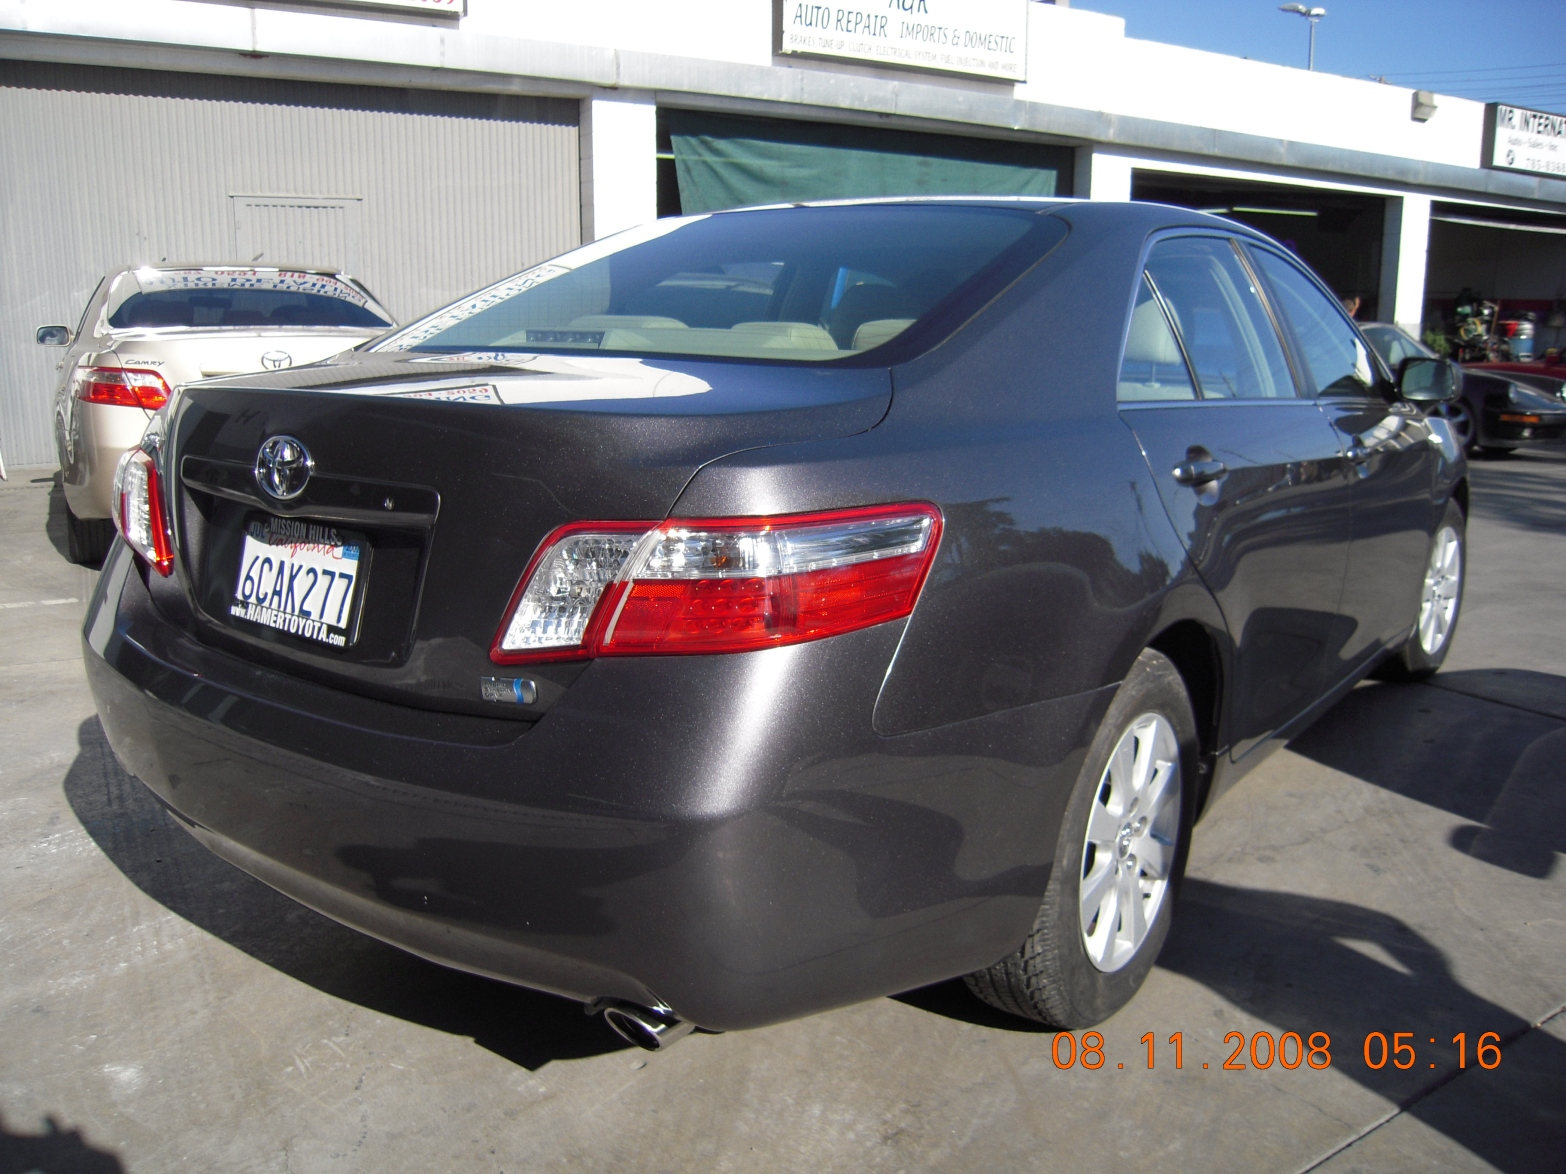 west-coast-body-and-paint-camry-2